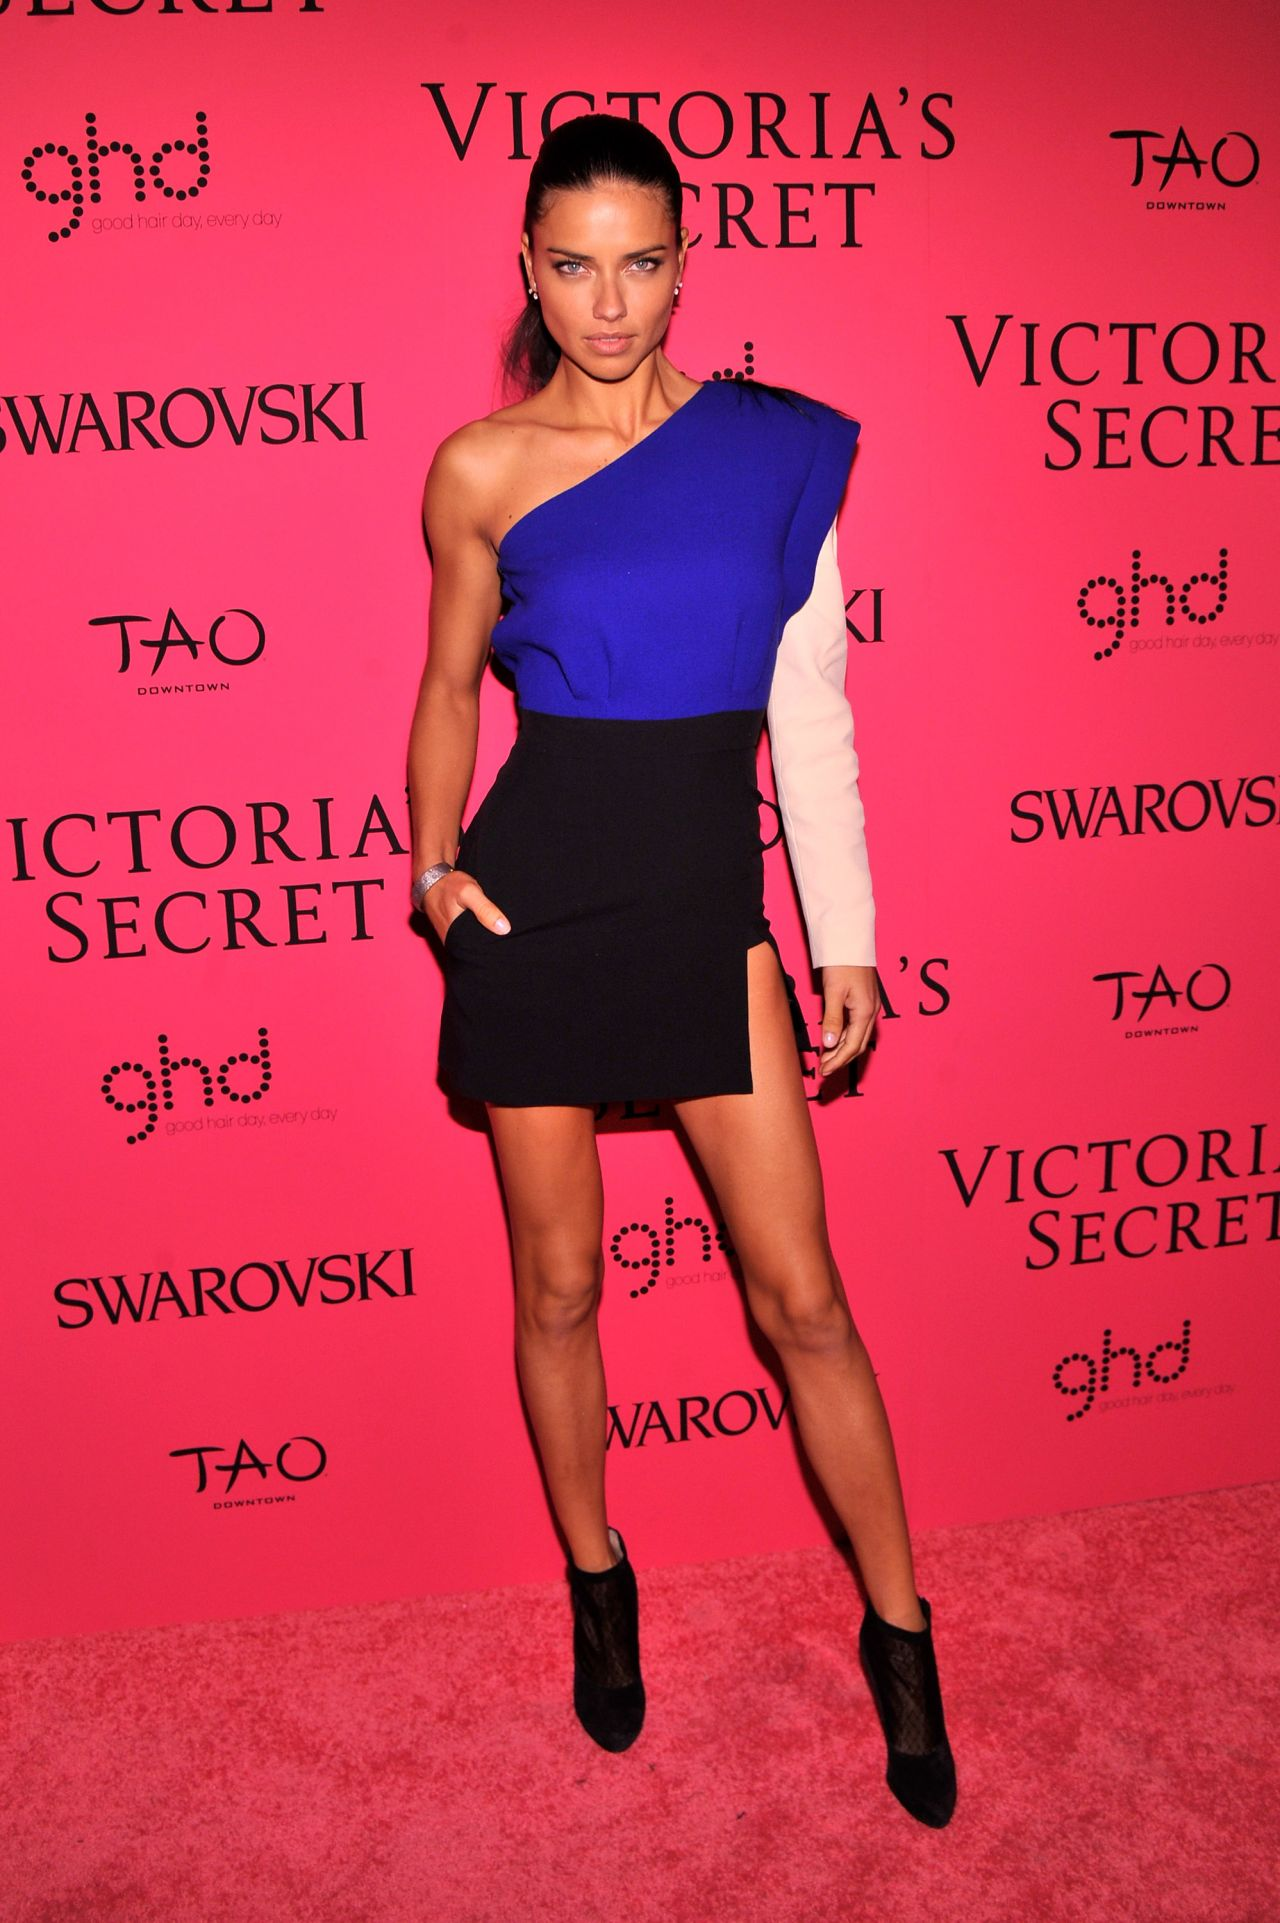 Adriana Lima Red Carpet Photos – Victoria's Secret Fashion After Party in New York - November 2013